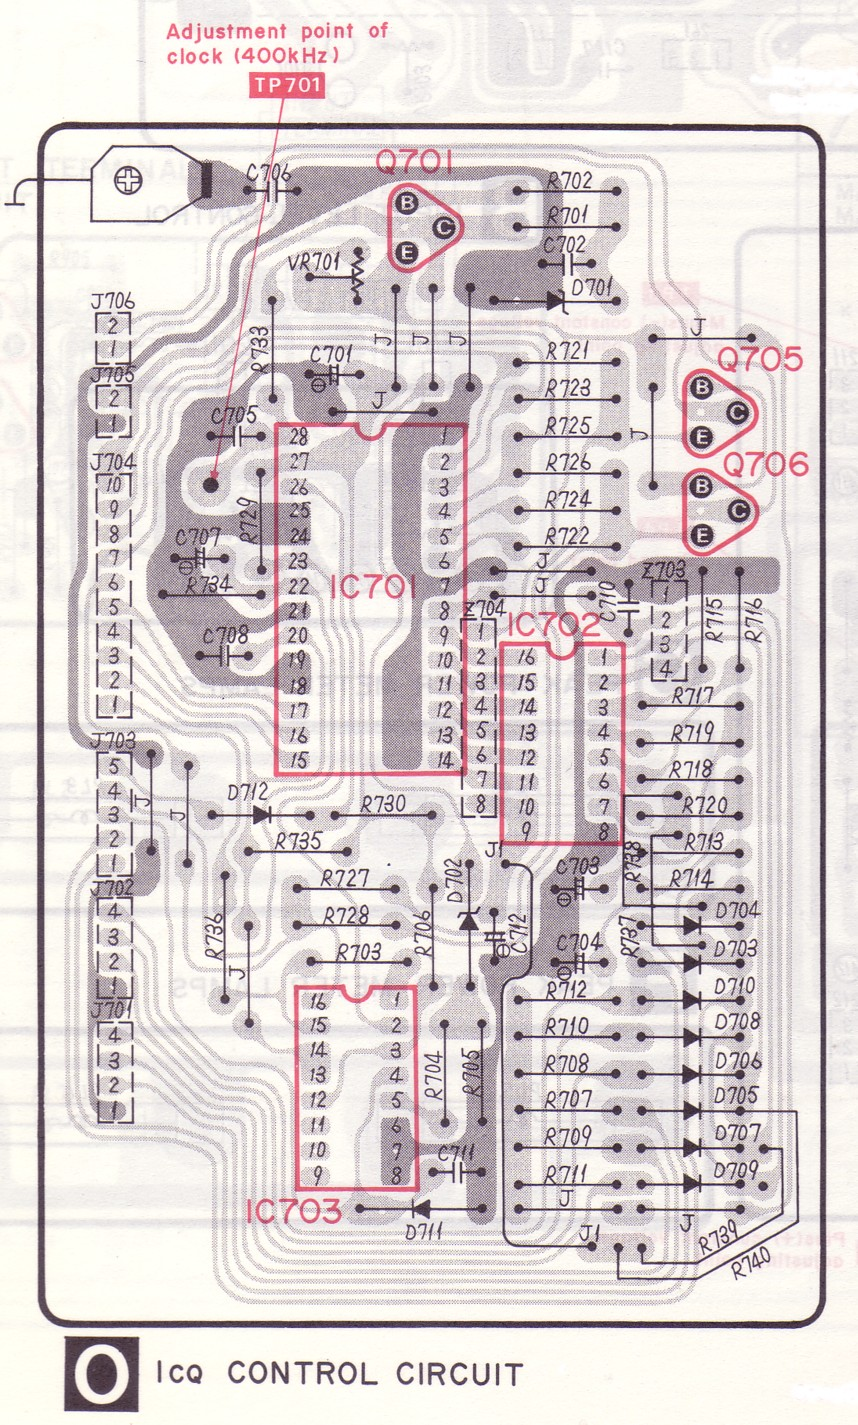 Technics Se A3mk2 Analog Acquisition Circuit Amplifiercircuit Diagram Computer Drive